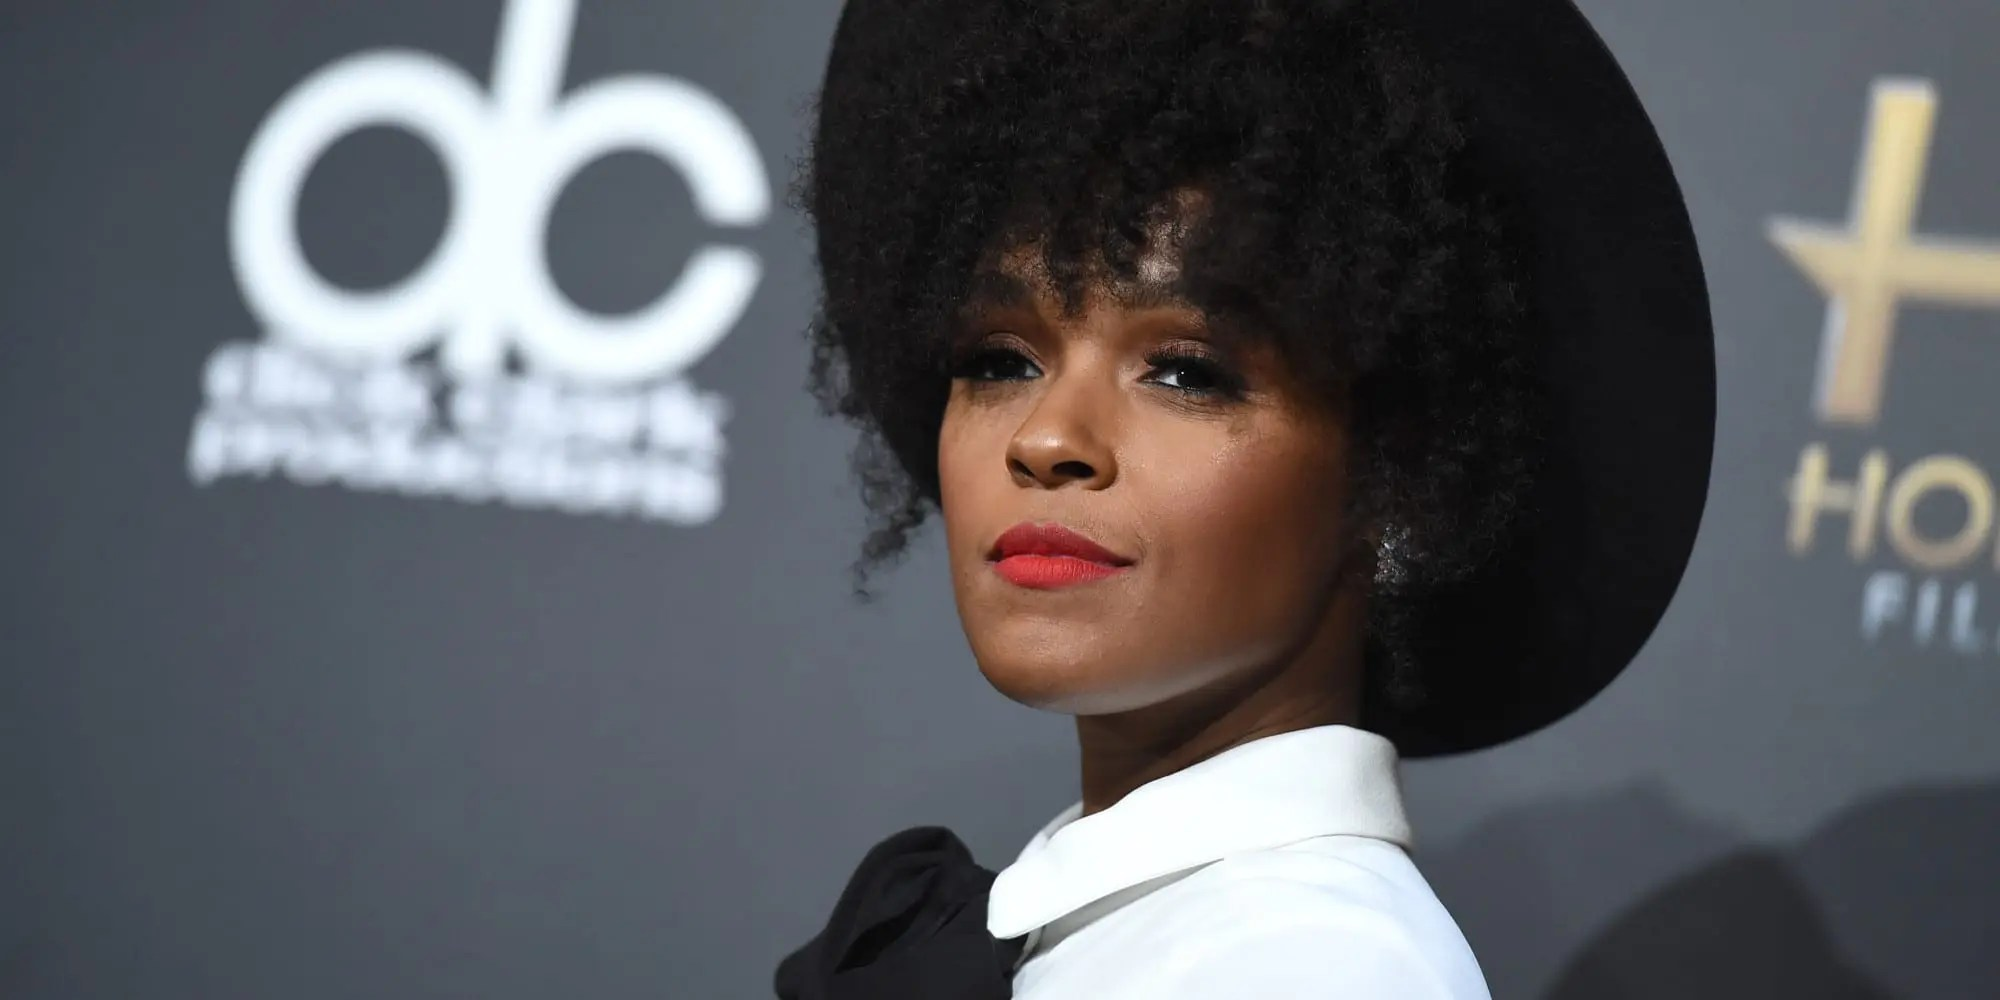 Janelle Monae queer